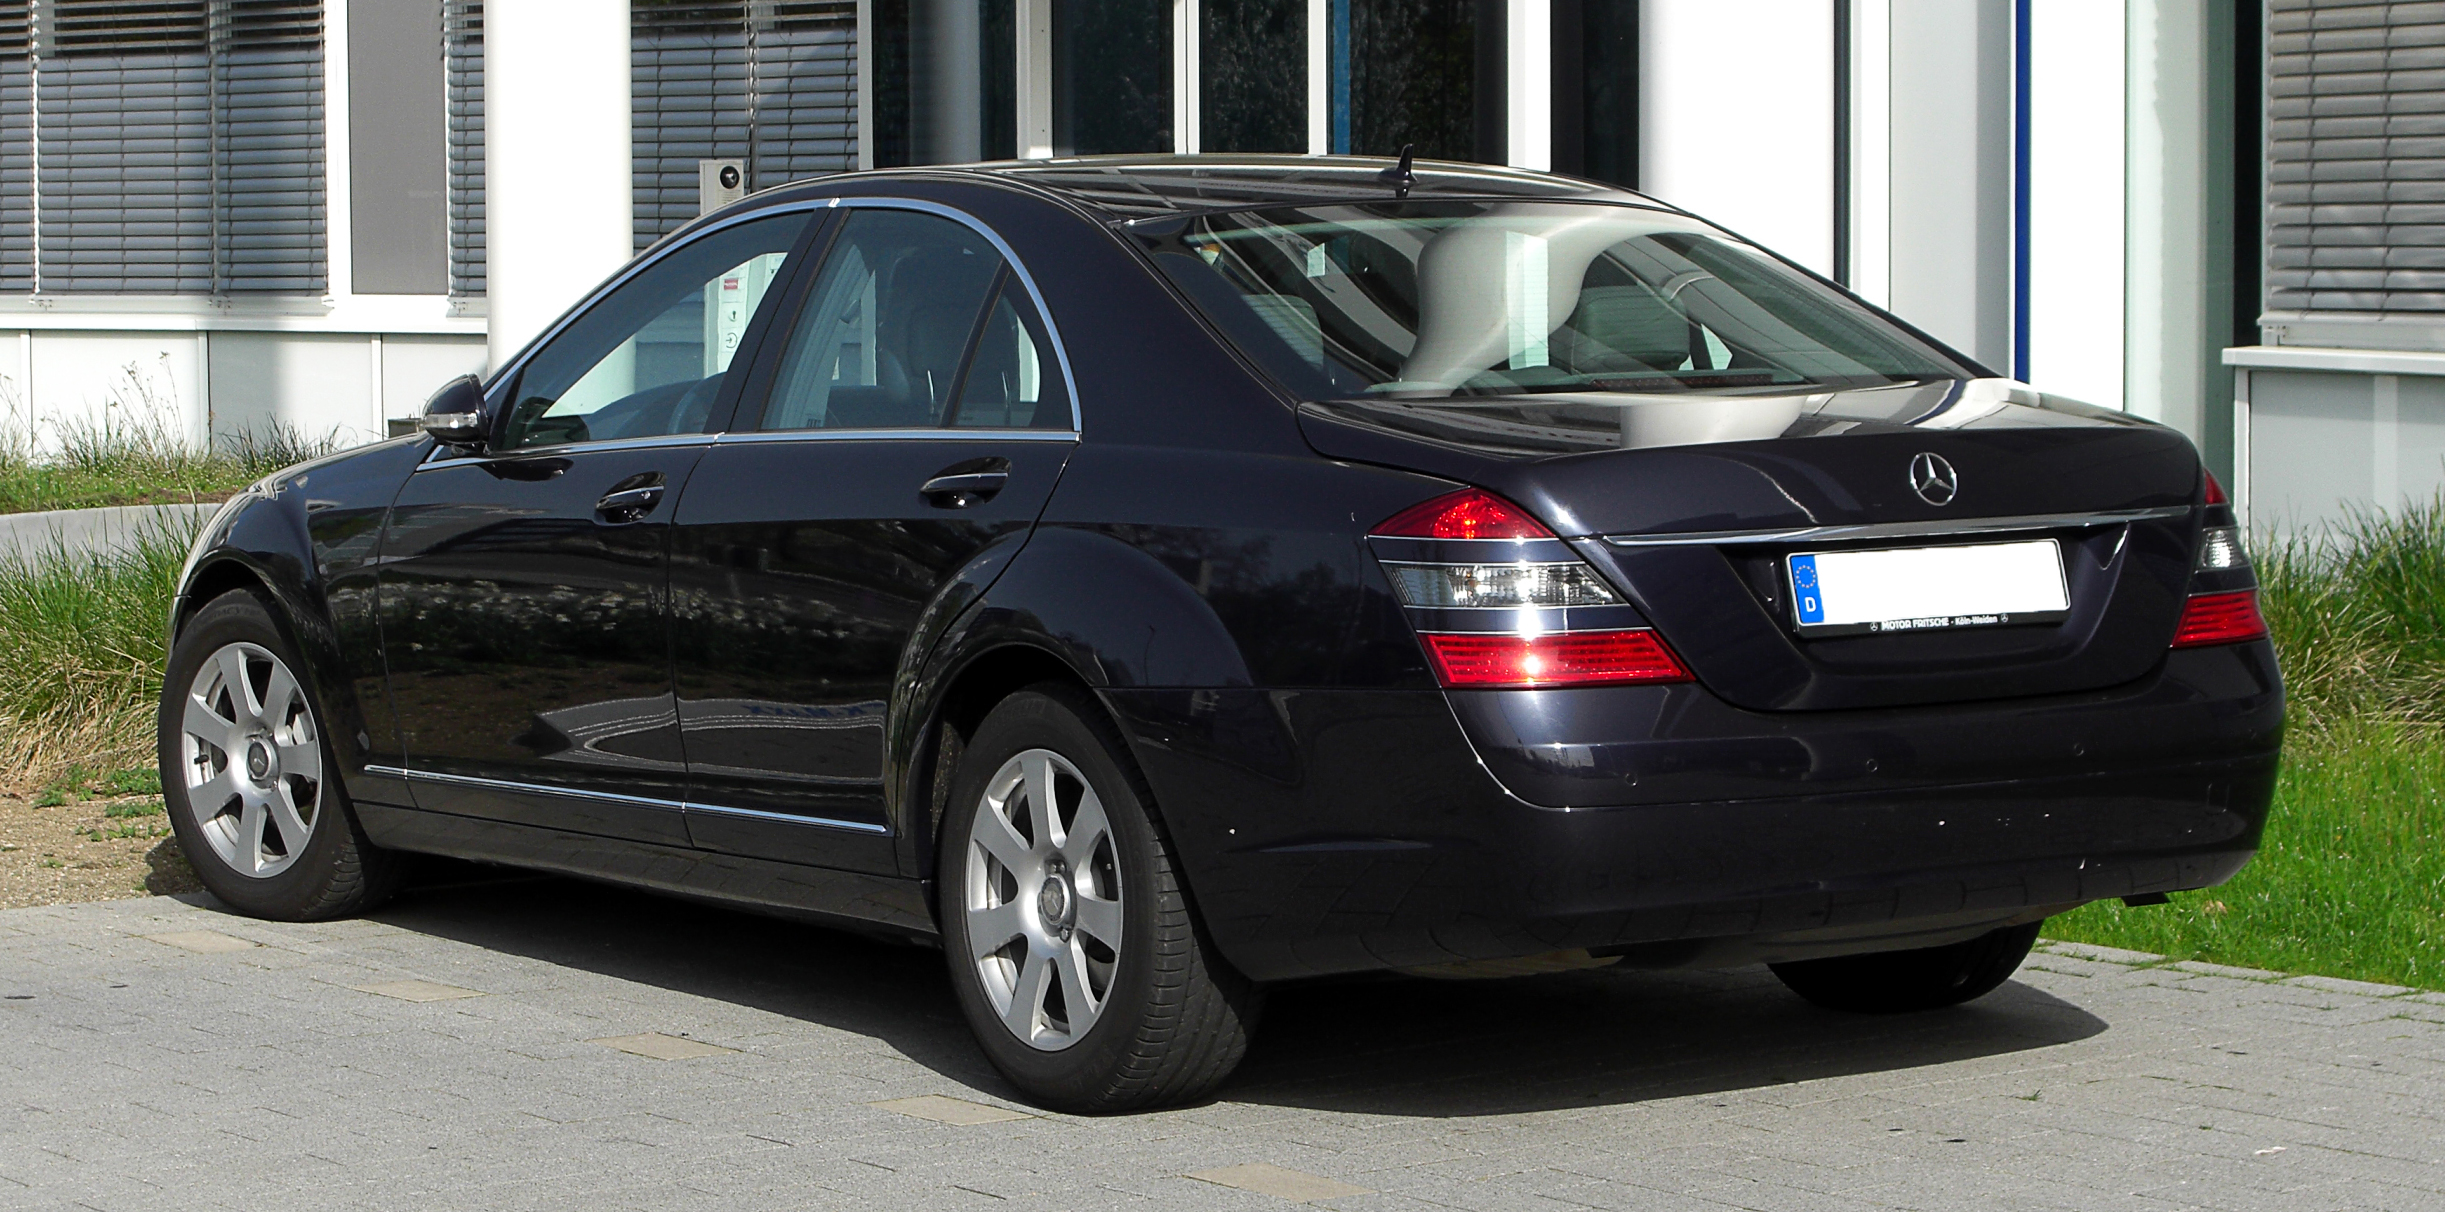 File:Mercedes-Benz S-Klasse (W 221) – Frontansicht, 10. April 2011 ...